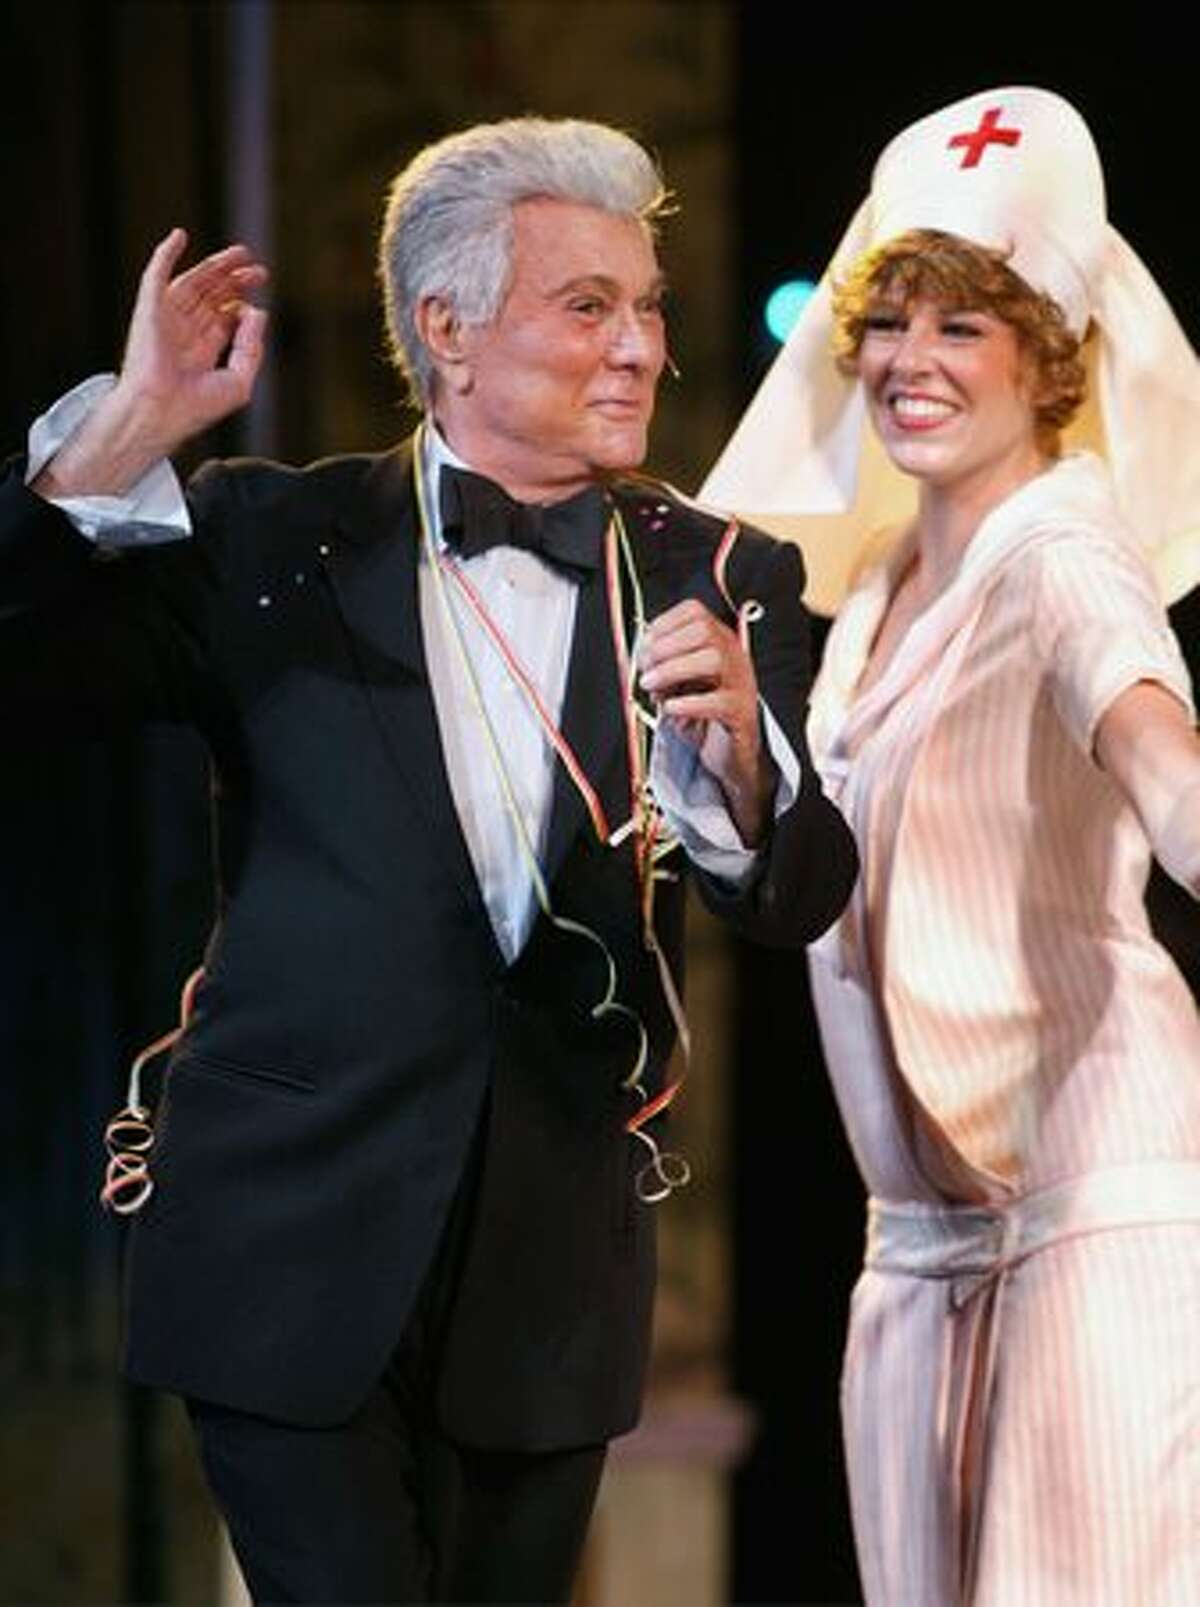 Tony Curtis performs as the multi-millionaire, Osgood Fielding III, in the musical